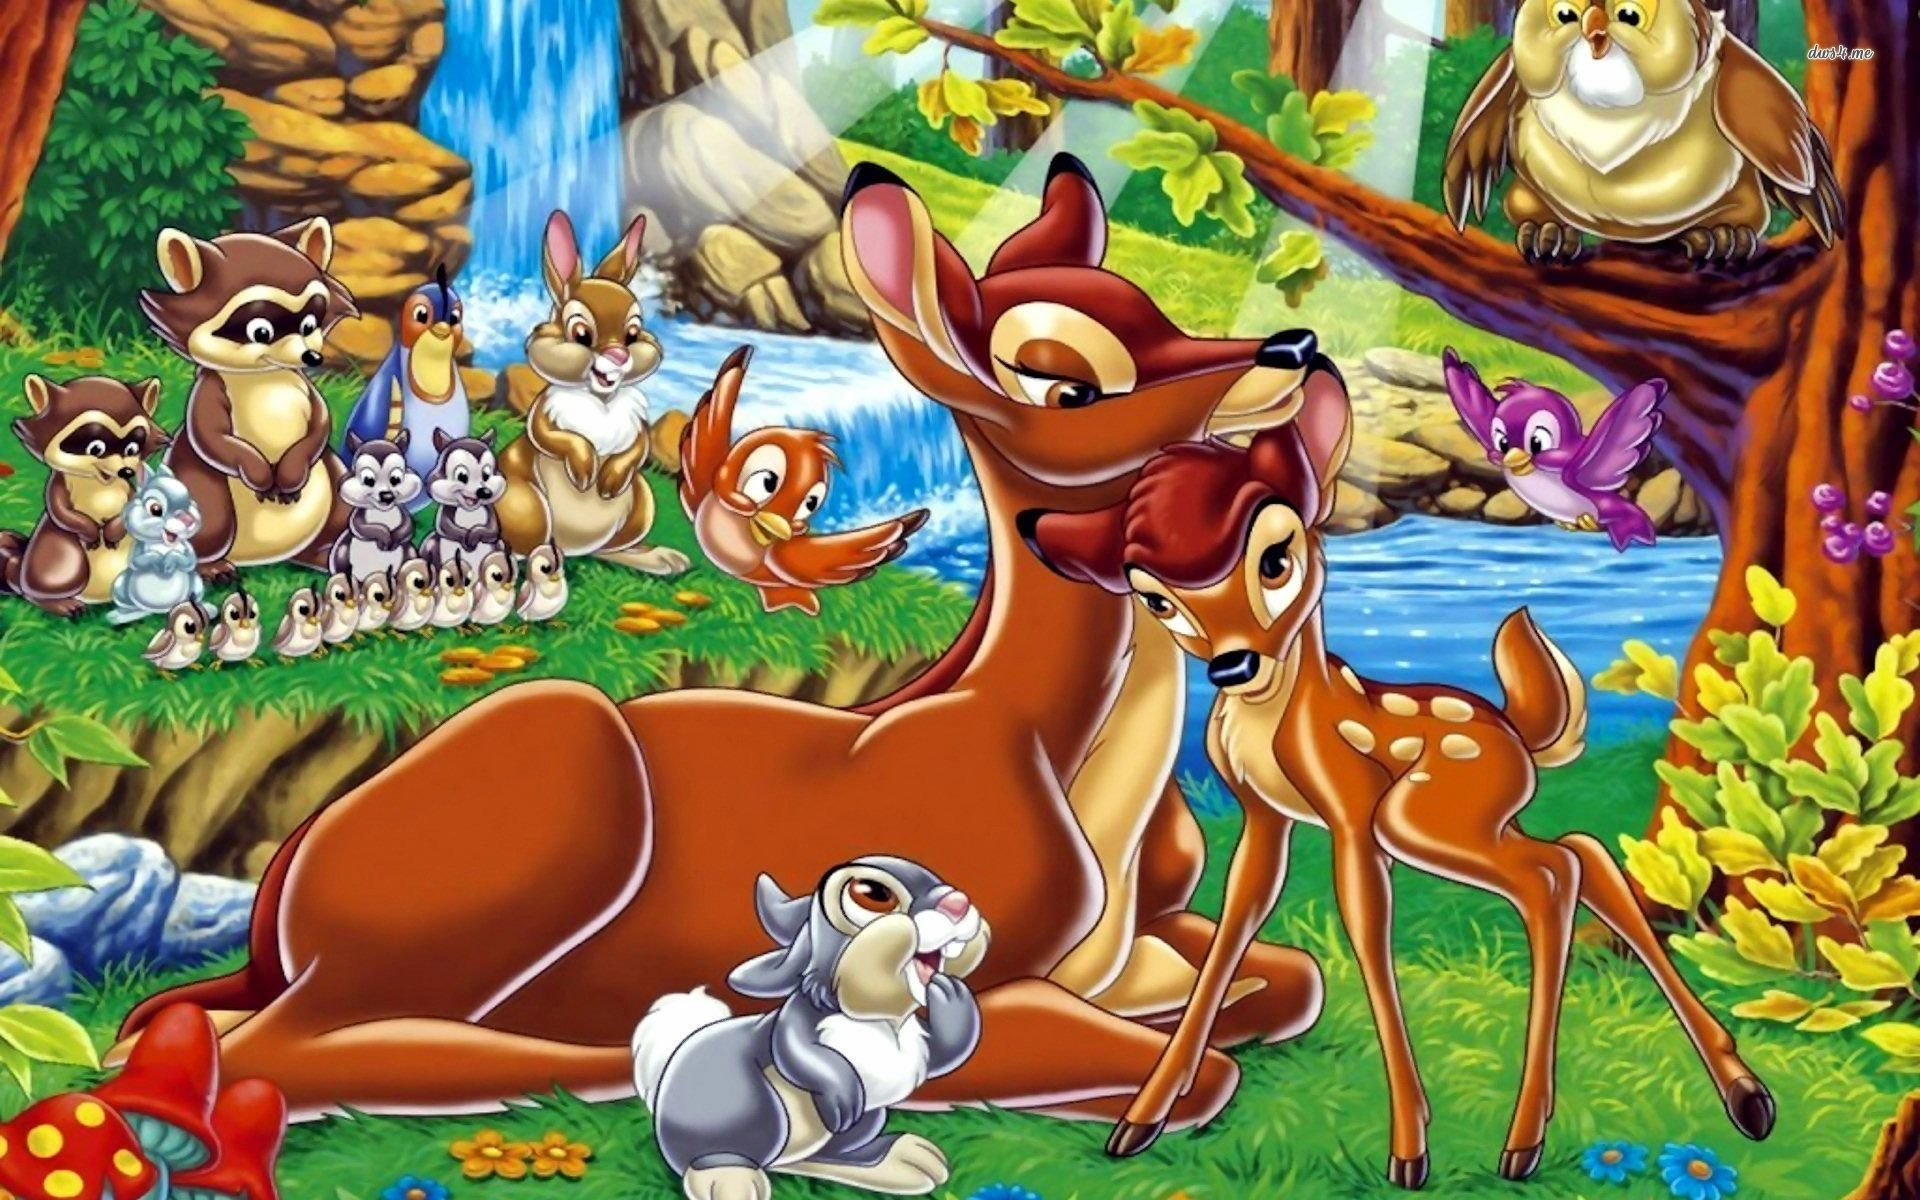 Res: 1920x1200, Bambi Wallpapers 15 - 1920 X 1200